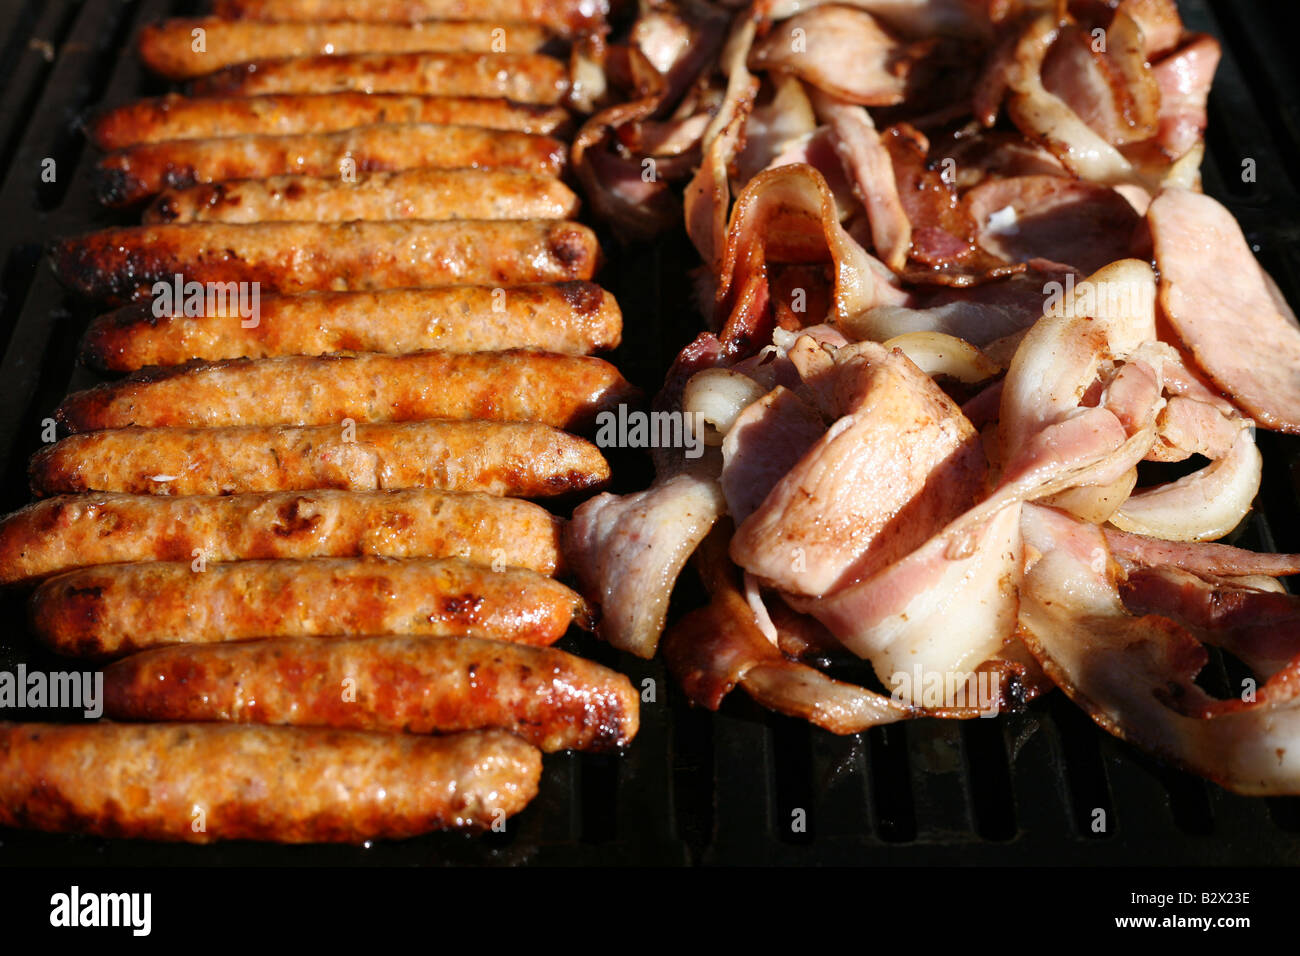 Cooking Bacon And Sausages On A Bbq In The Summer In Australia